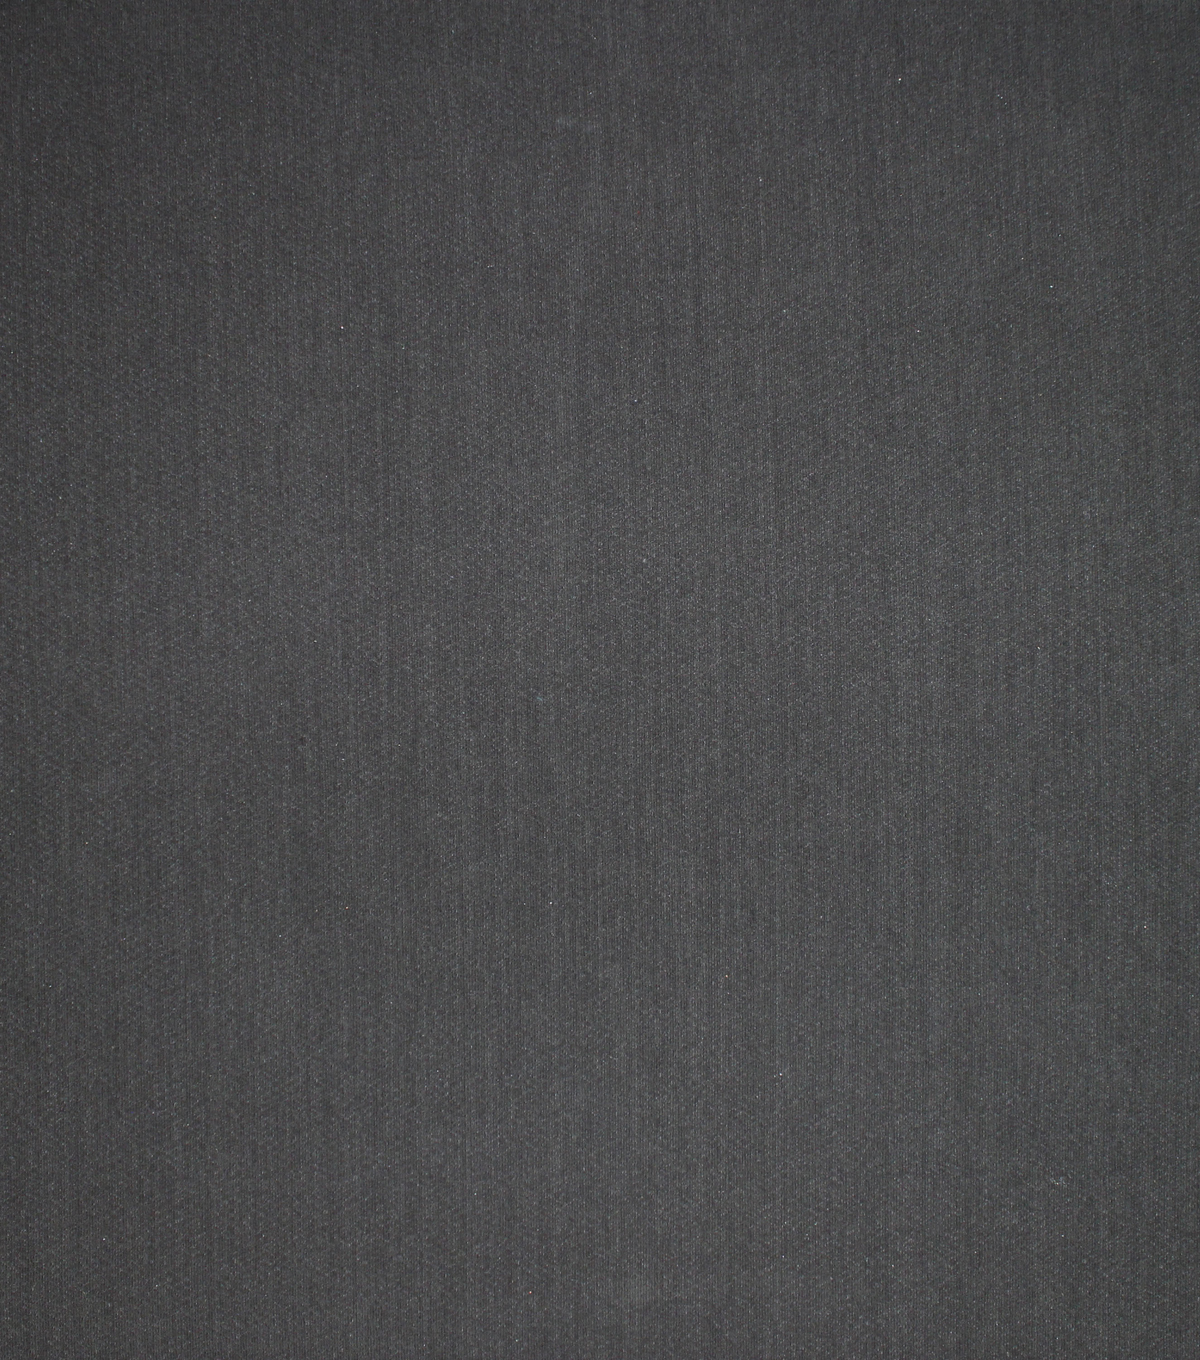 Home Decor 8\u0022x8\u0022 Fabric Swatch-Upholstery Fabric Barrow M8624-5975 Charcoal